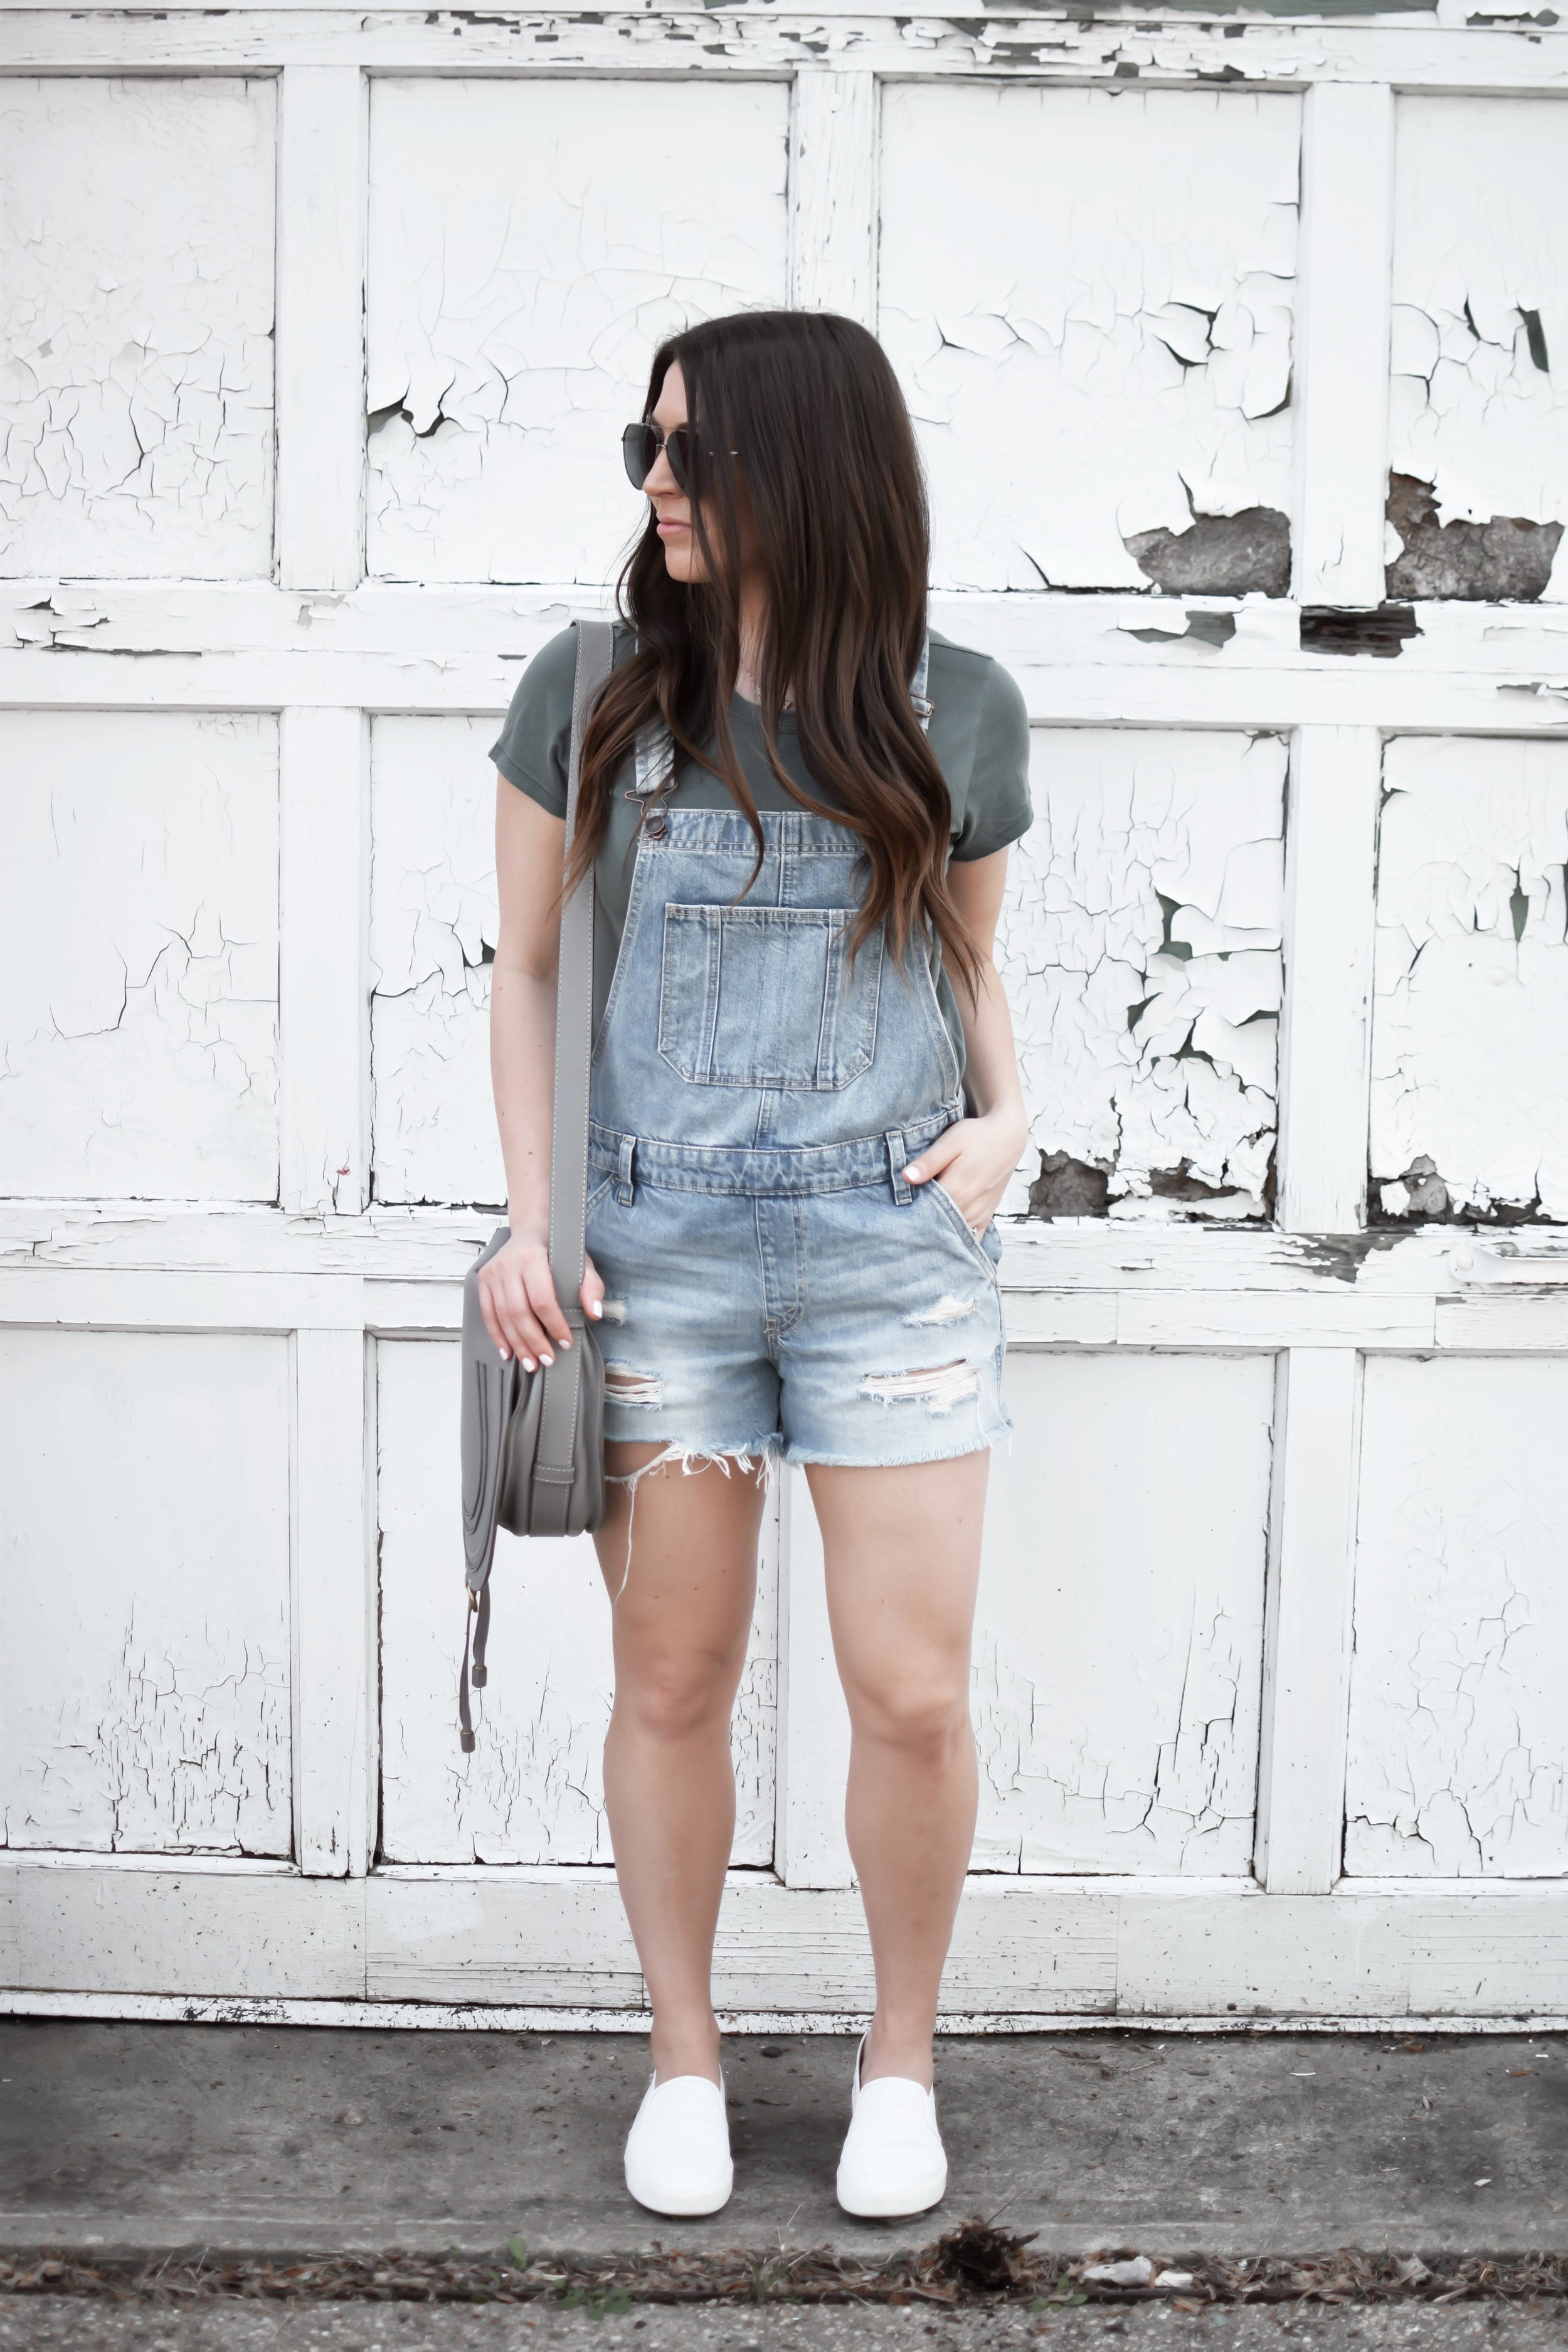 How to Style Overalls | Pine Barren Beauty | how to wear overalls, Abercrombie overalls, basic tee, Vince slip ons, summer outfit idea, summer outfit inspiration